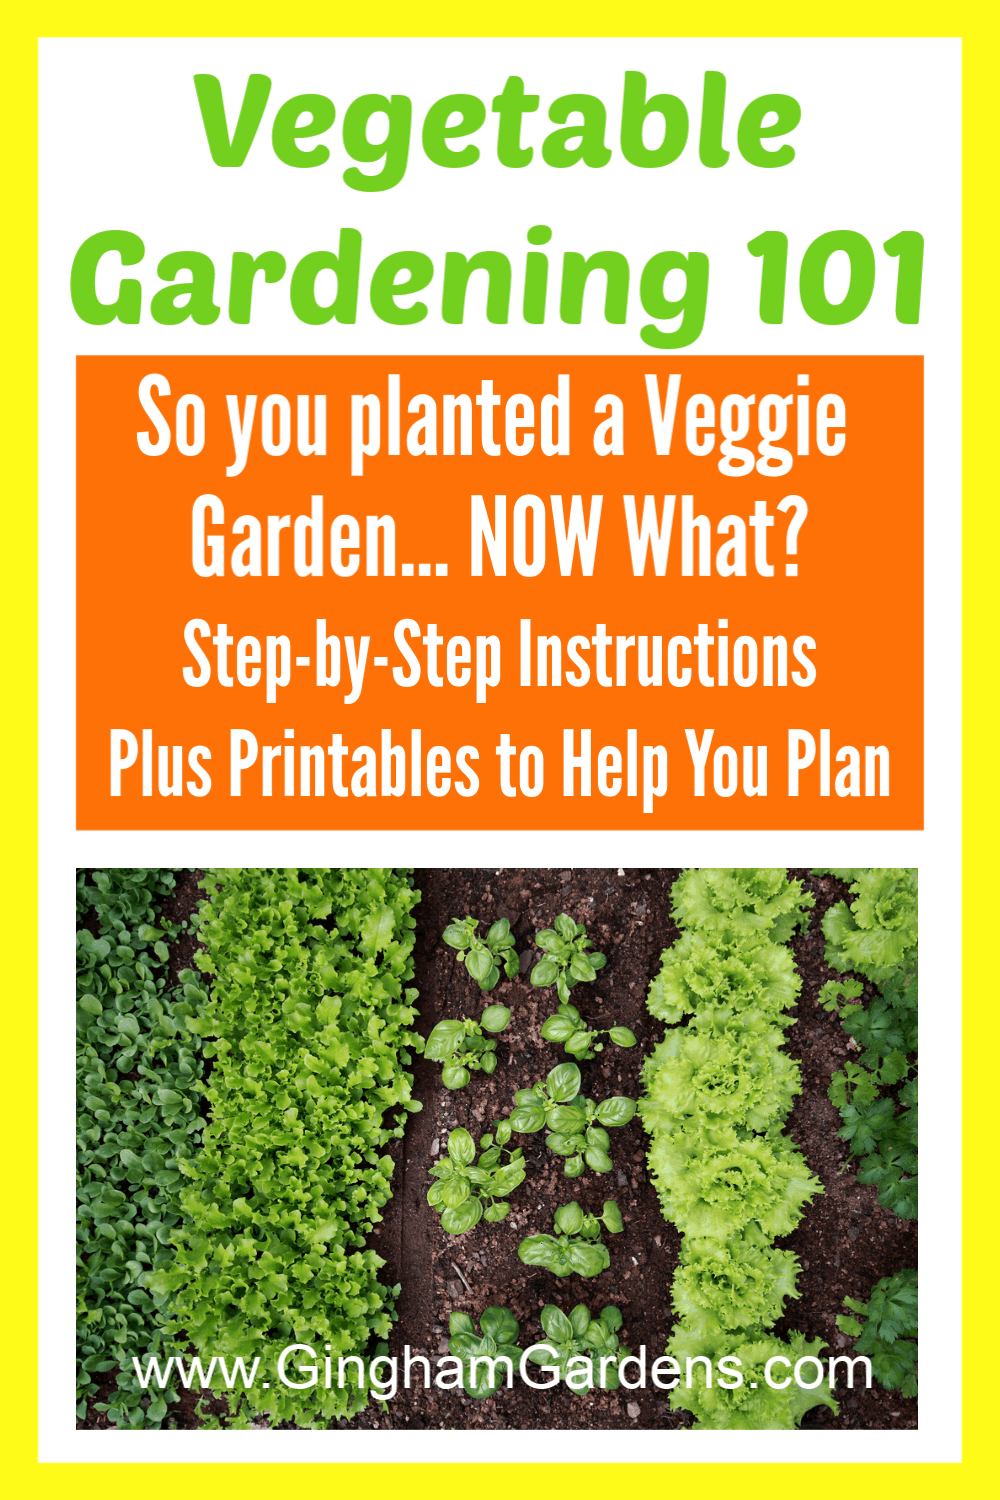 Image of Vegetable Garden with Text Overlay - Vegetable Gardening 101